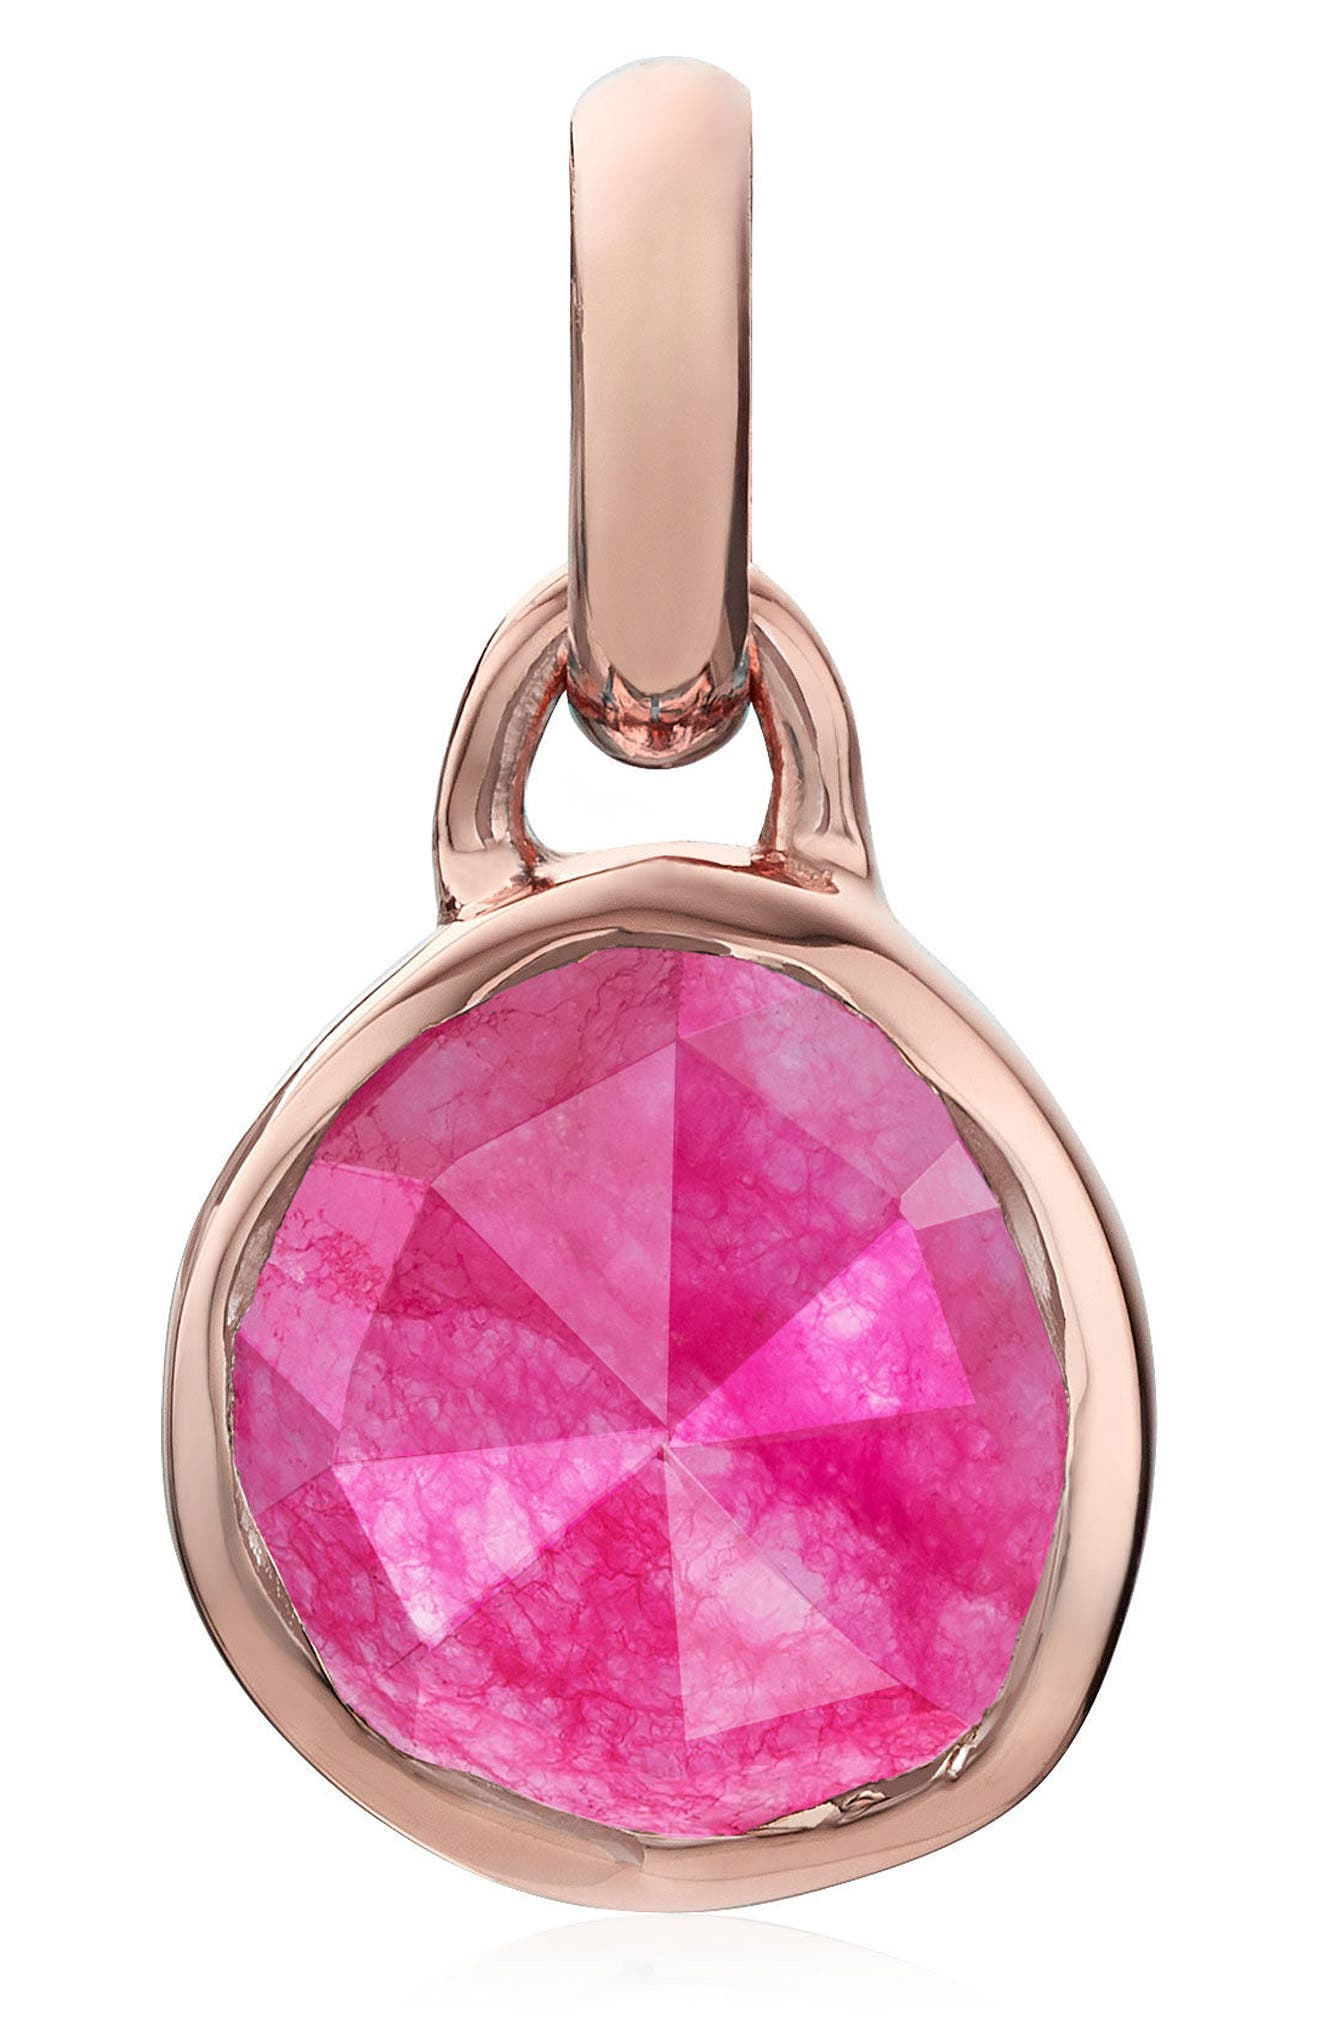 Siren Mini Semiprecious Stone Bezel Pendant,                         Main,                         color, Rose Gold/ Pink Quartz